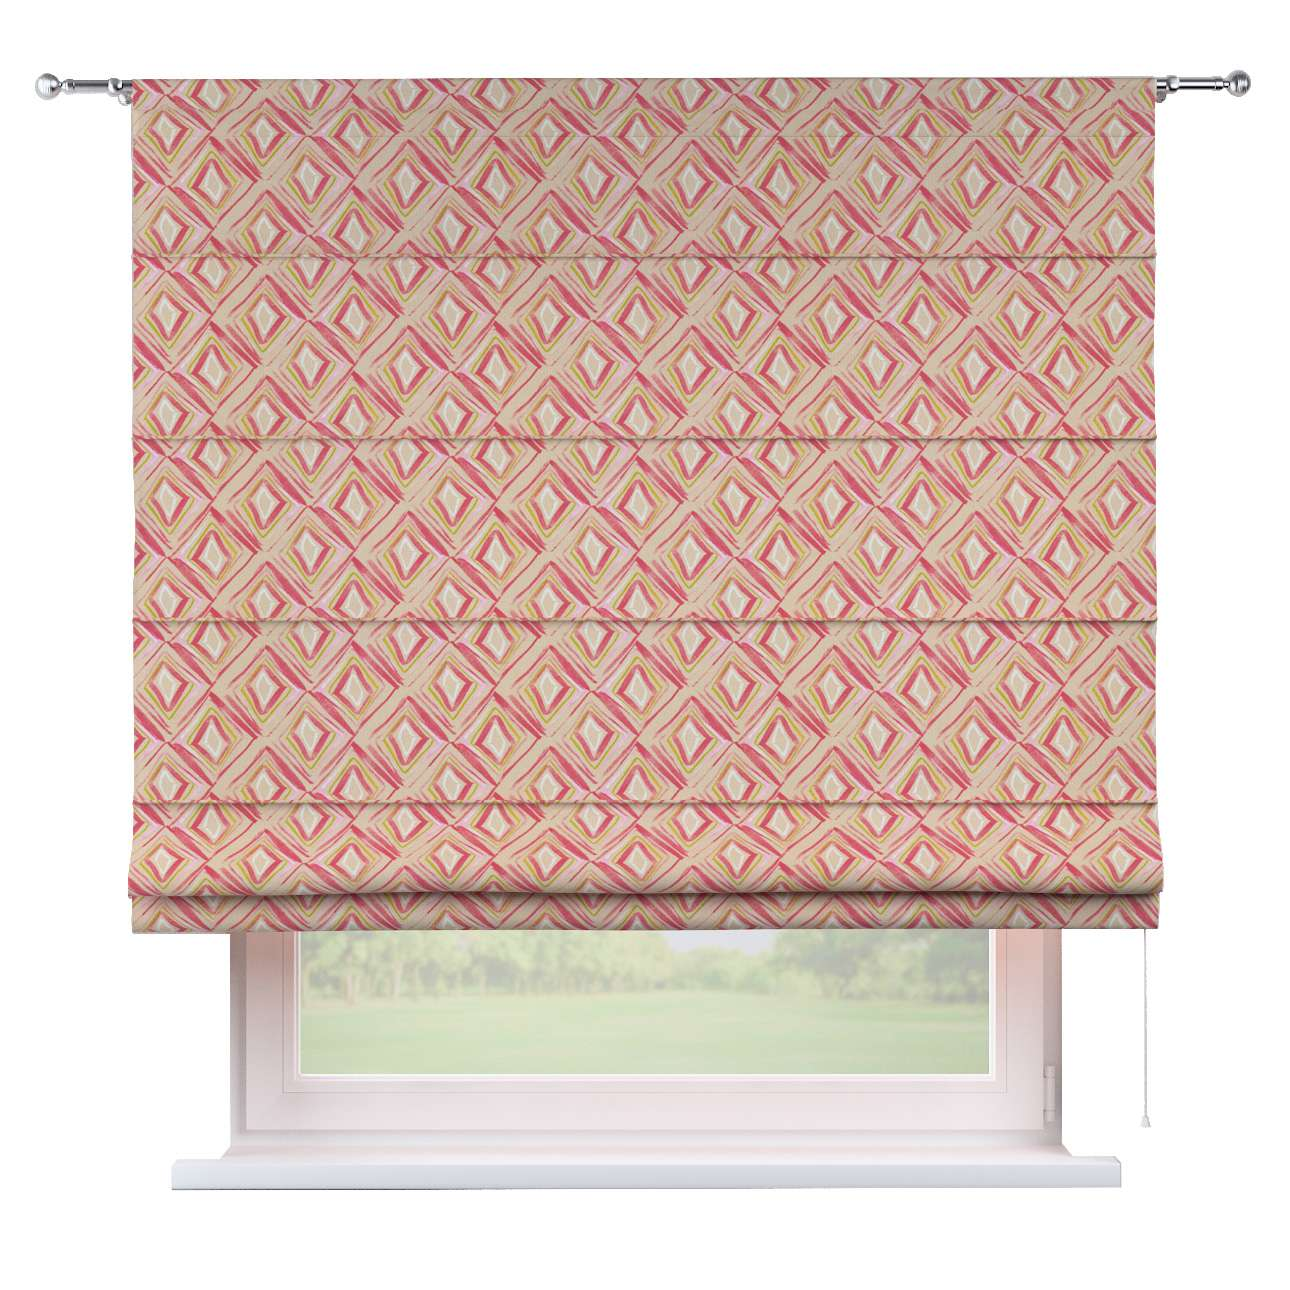 Torino slot roman blind in collection Londres, fabric: 140-45